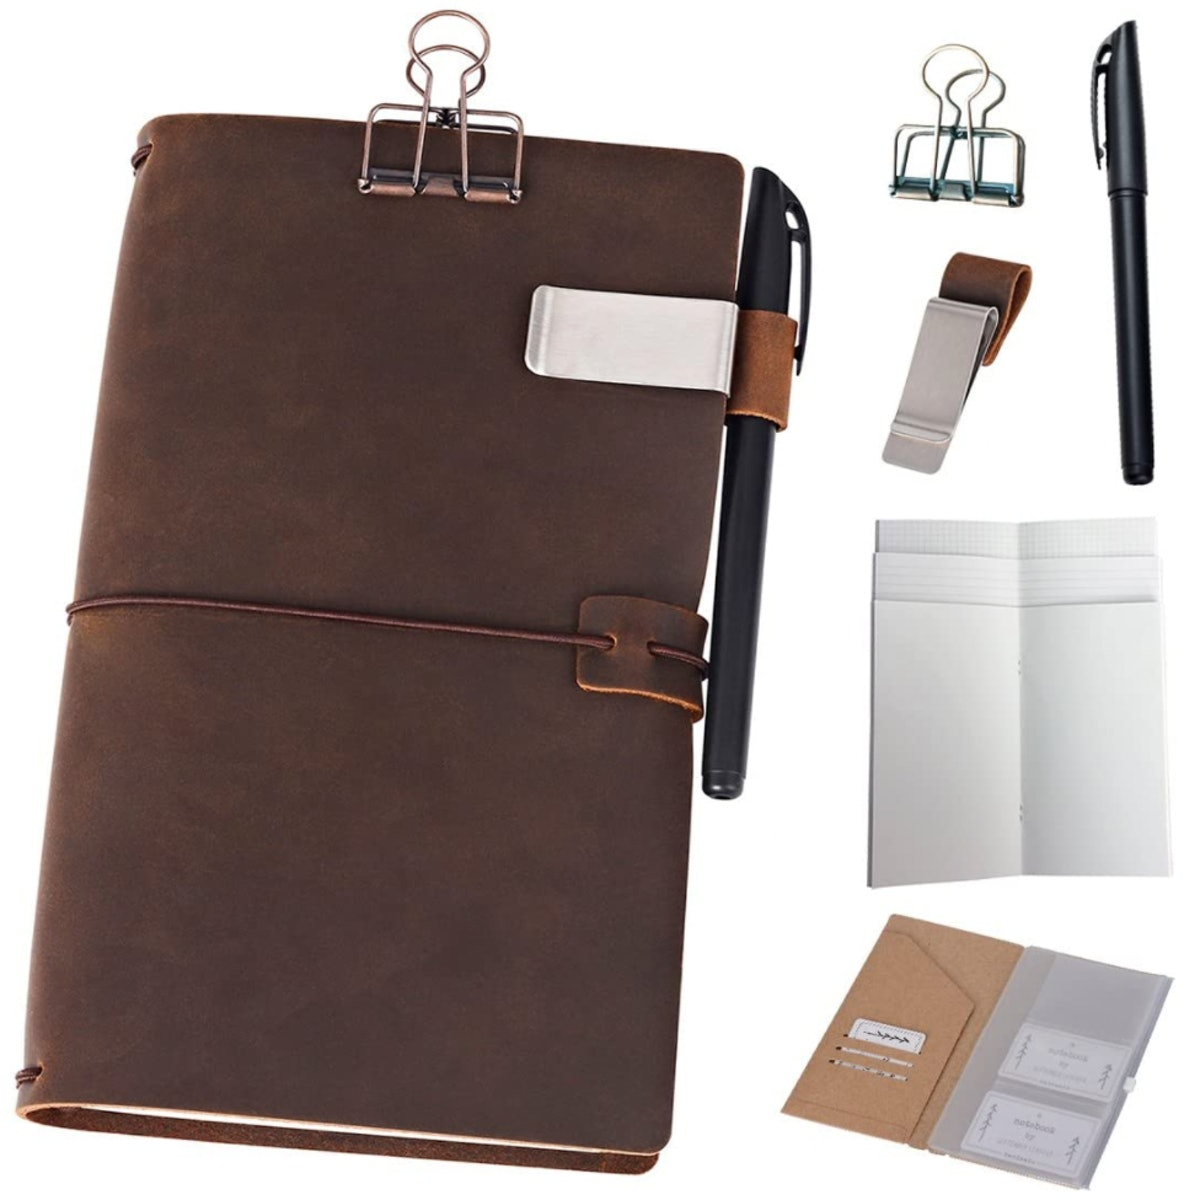 Newestor Refillable Leather Journal